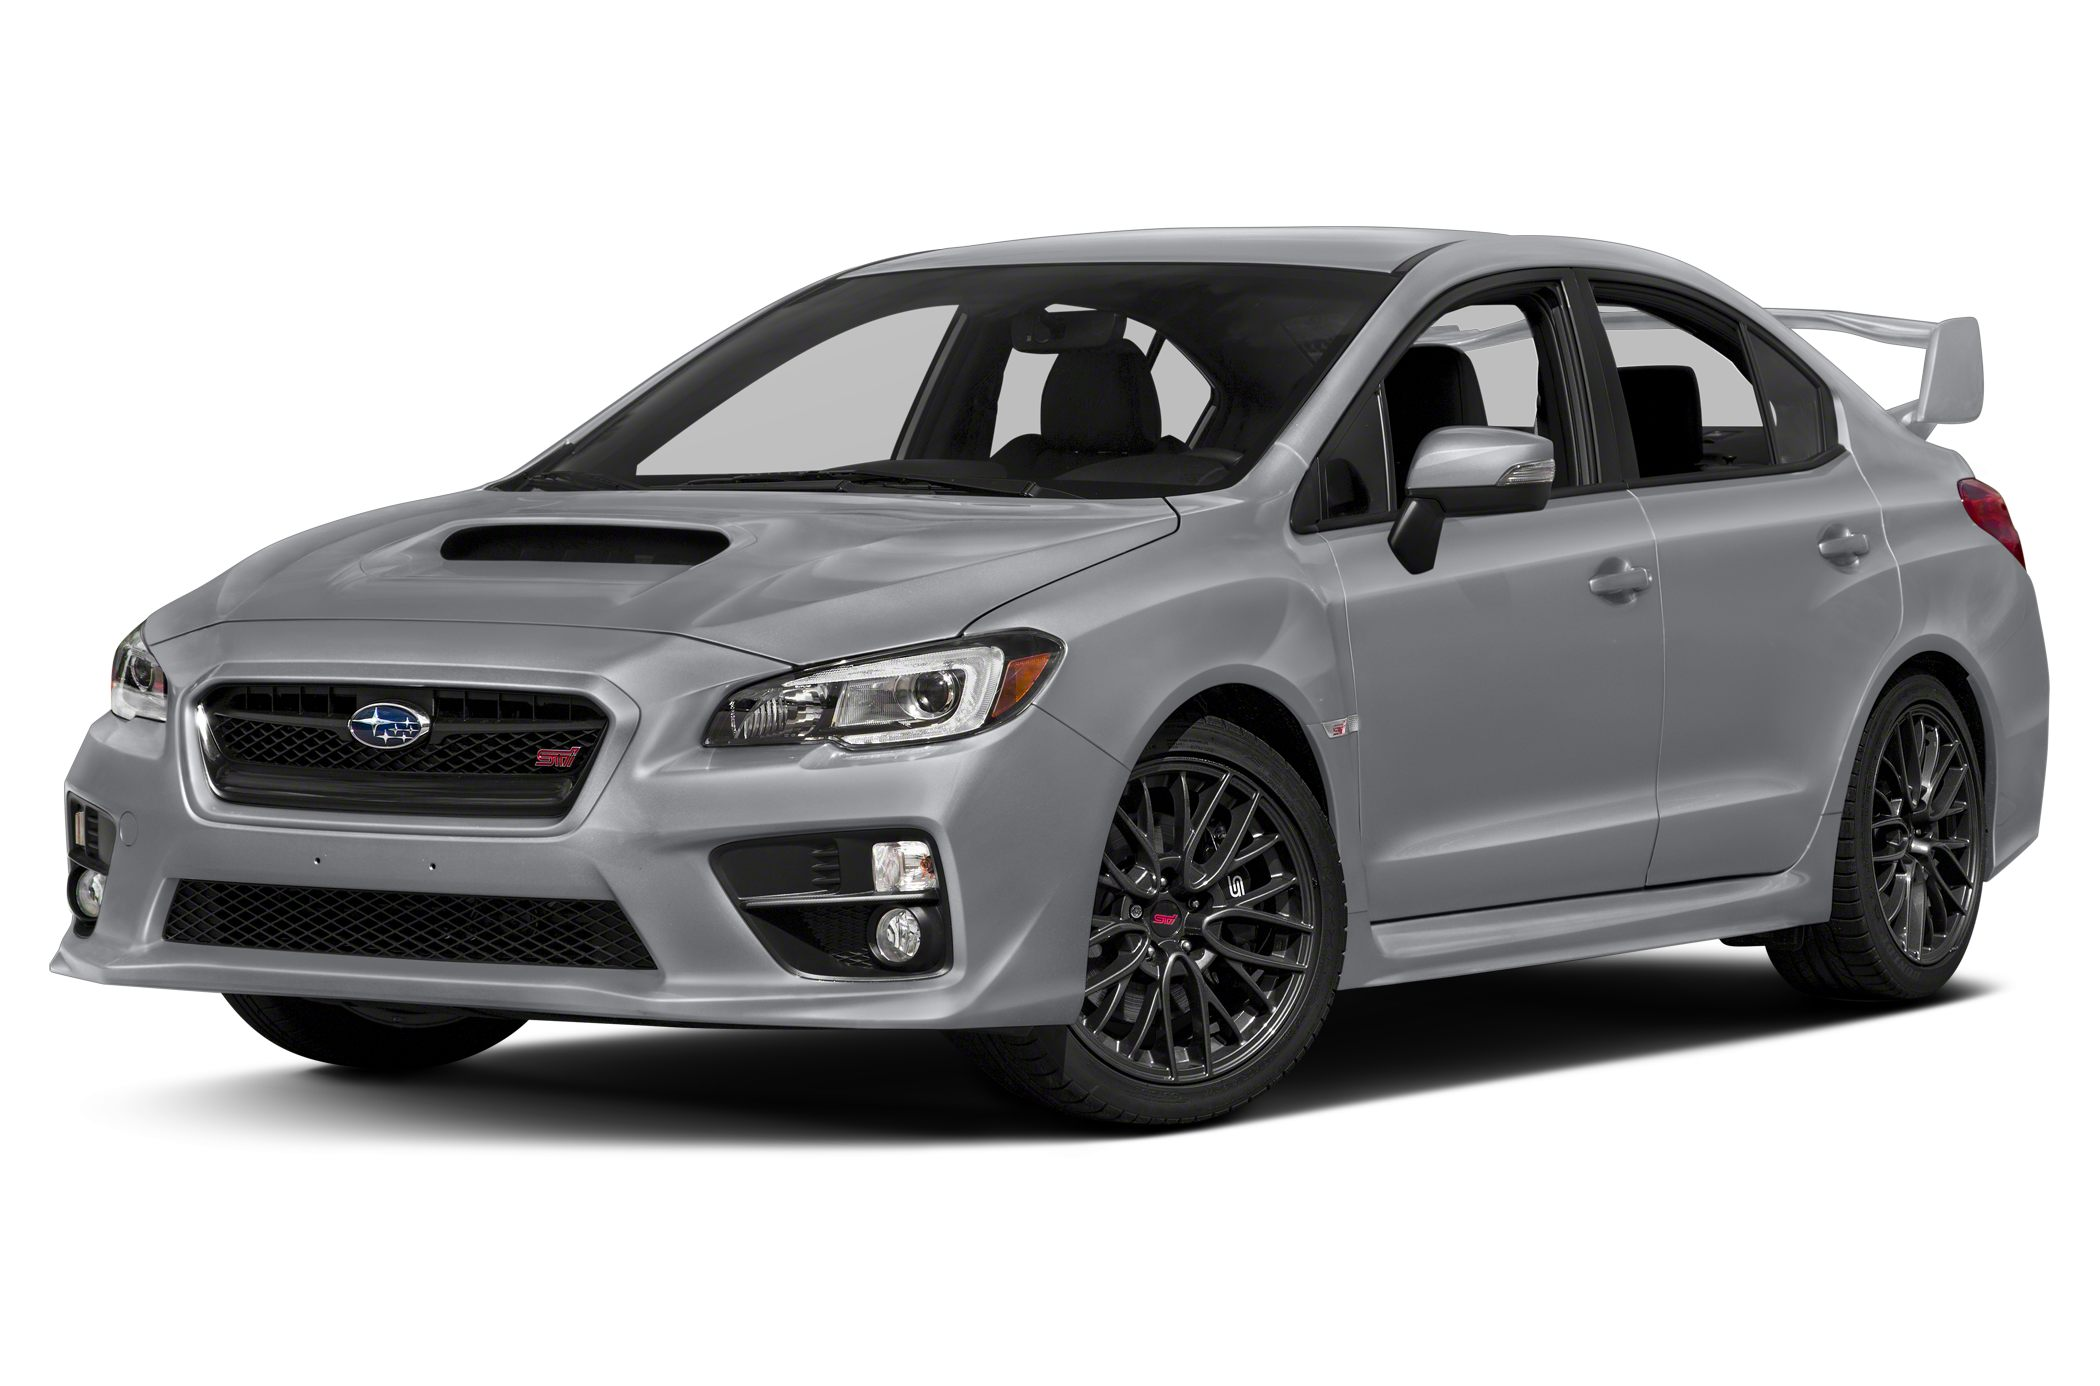 subaru wrx sti s207 limited to 400 units in japan only. Black Bedroom Furniture Sets. Home Design Ideas